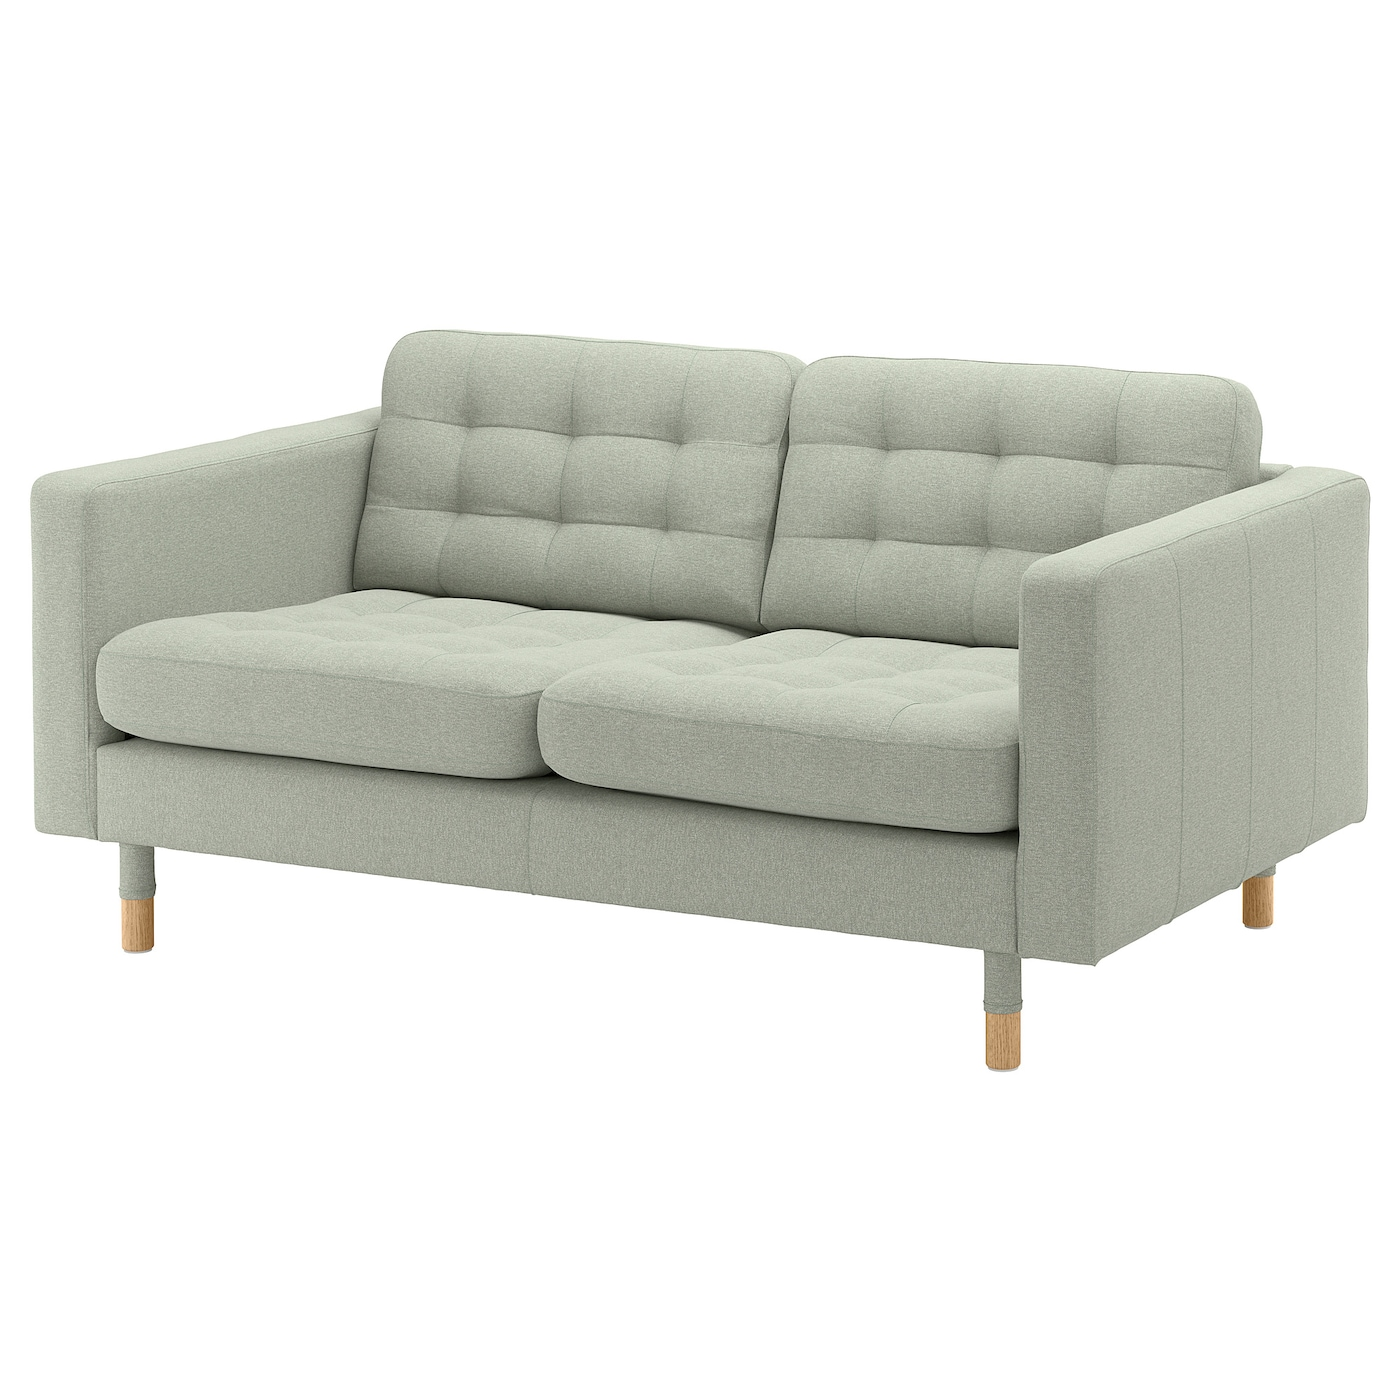 IKEA LANDSKRONA 2-seat sofa 10 year guarantee. Read about the terms in the guarantee brochure.